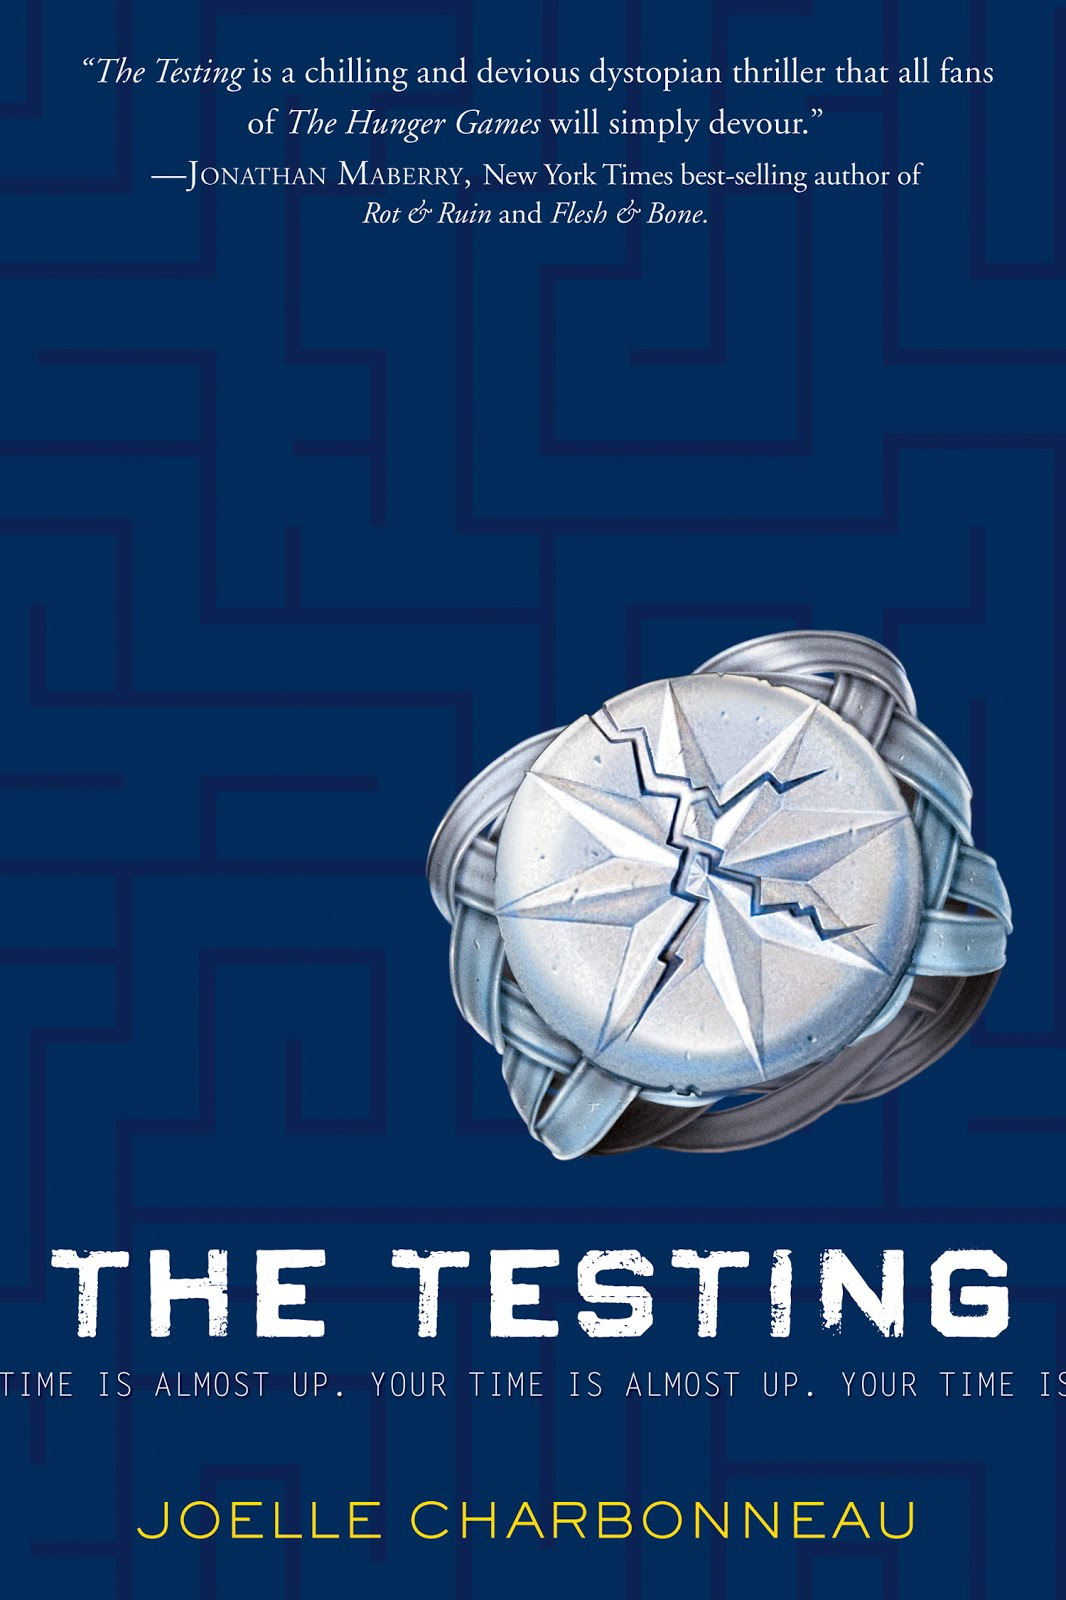 Book Review: The Testing by Joelle Charbonneau |